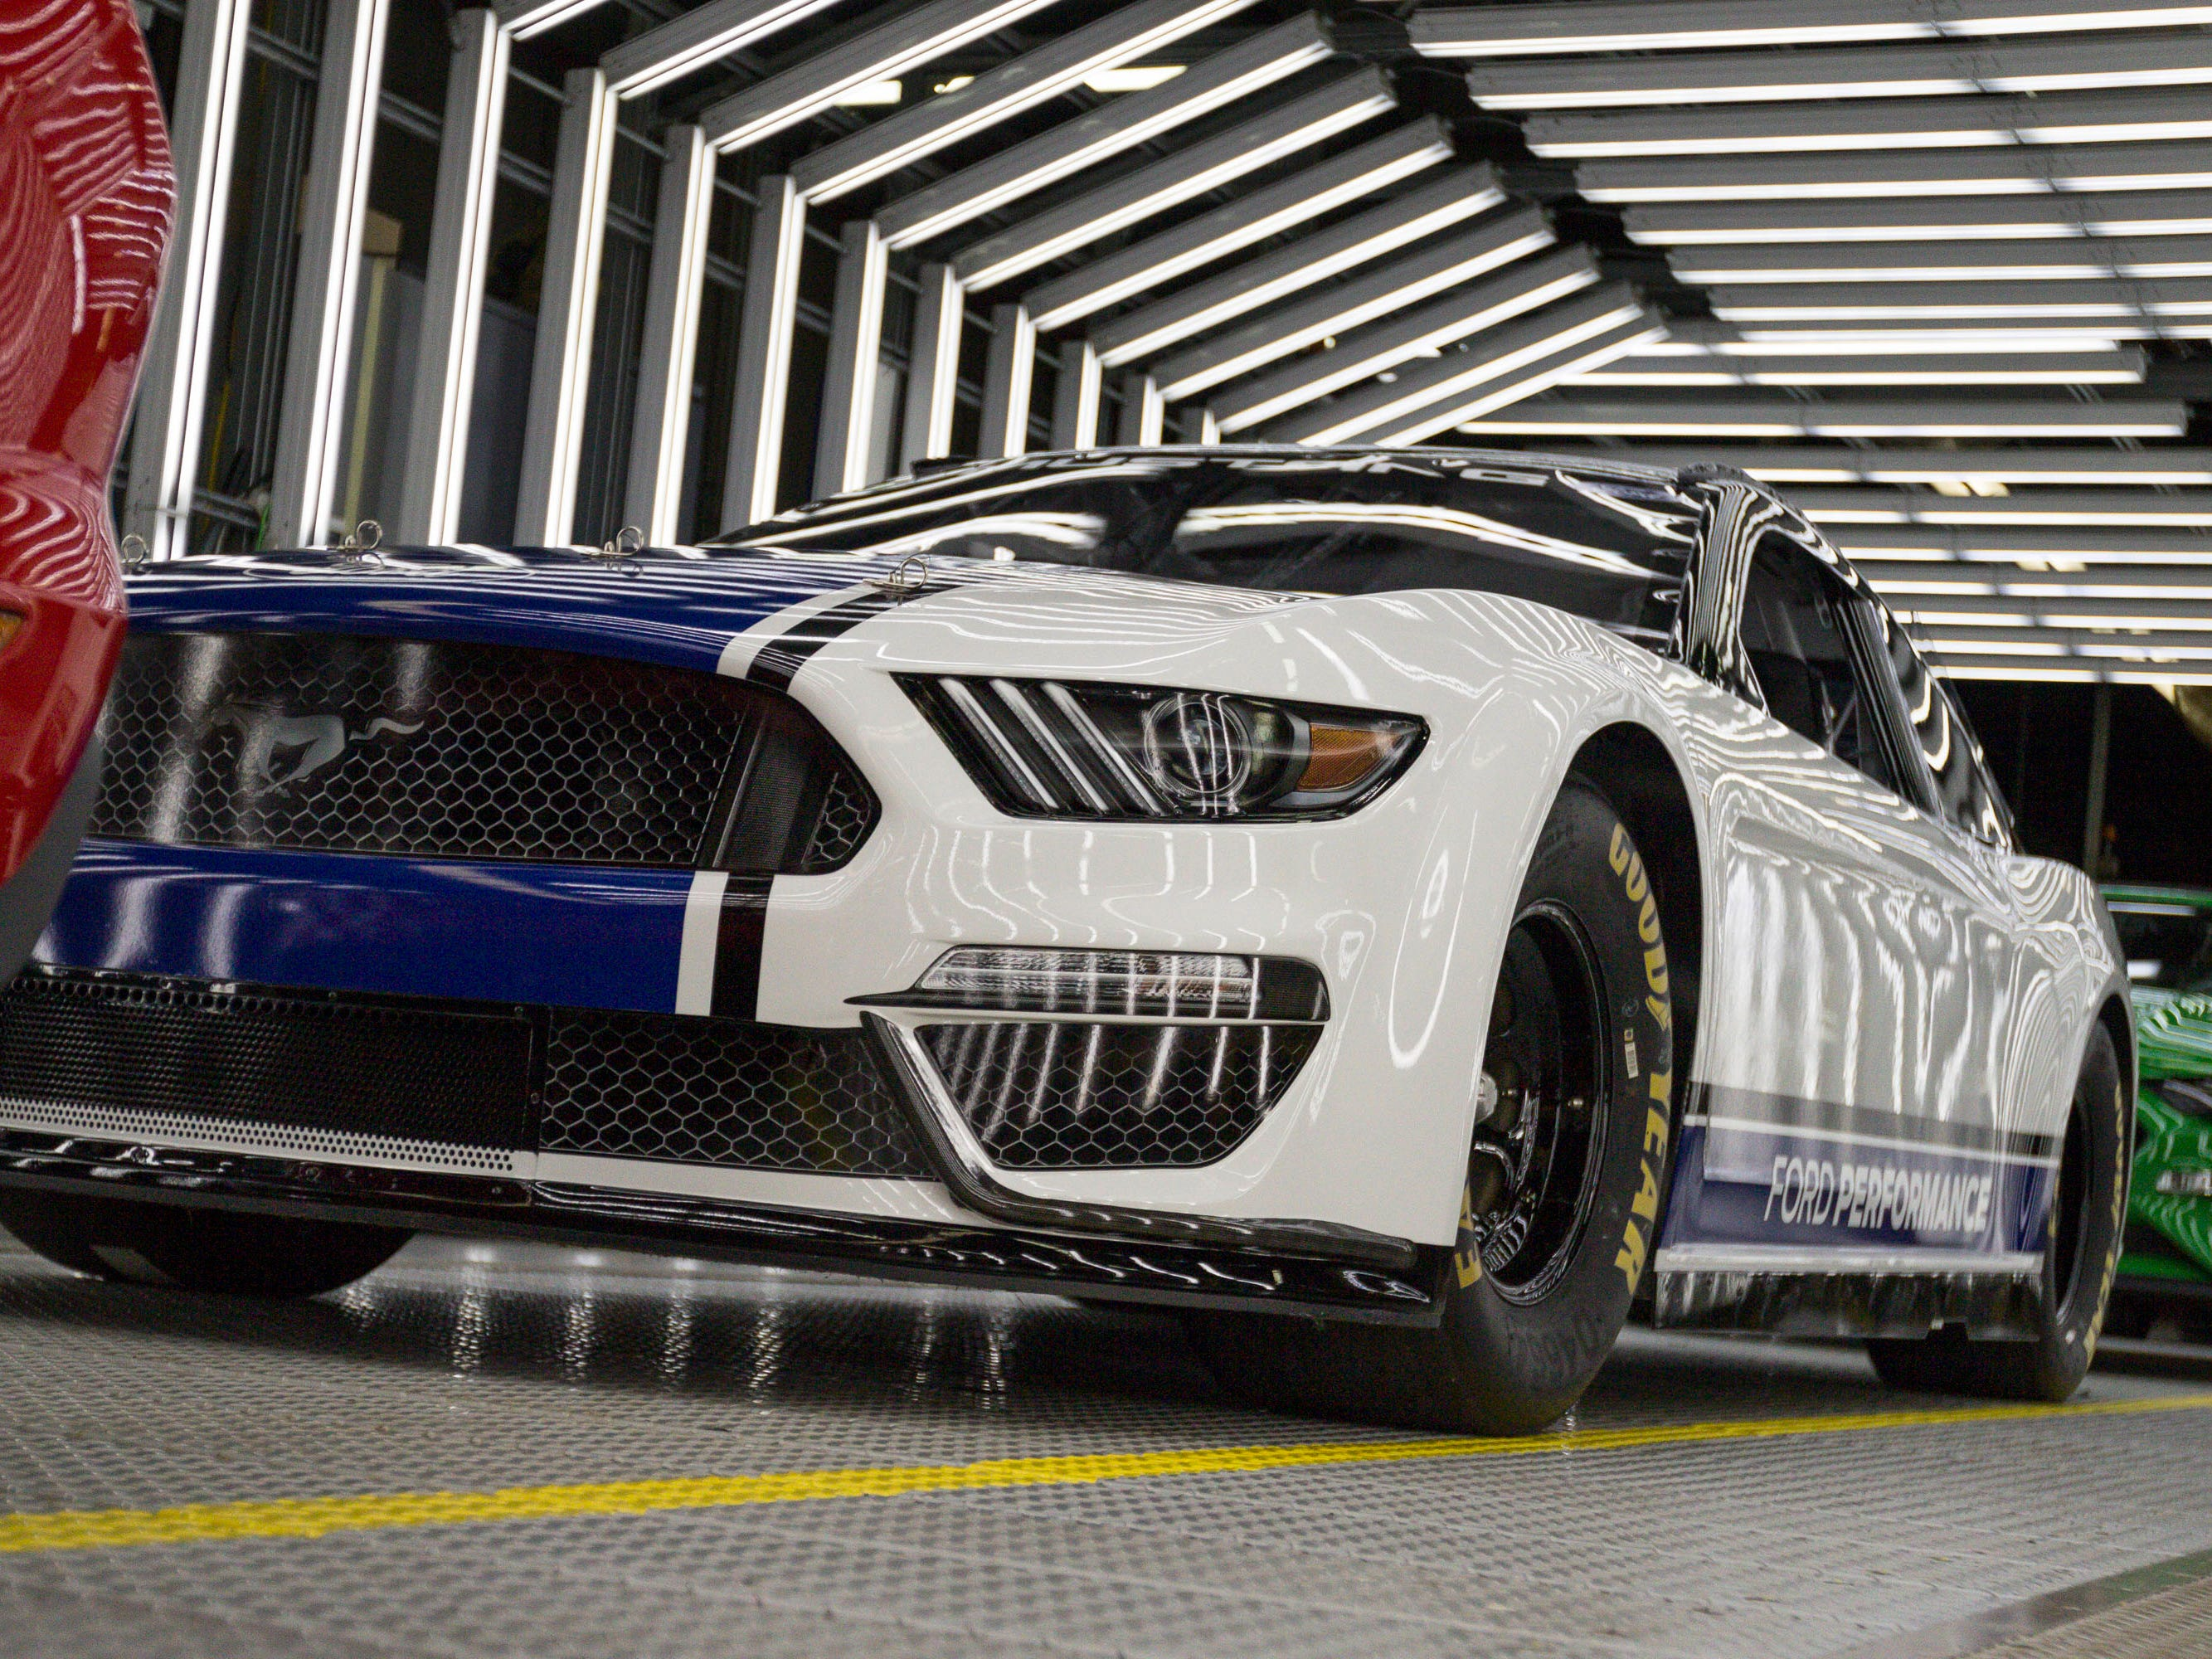 Ford Performance and Ford Design teams worked carefully to translate Mustang's signature style to meet NASCAR rules.